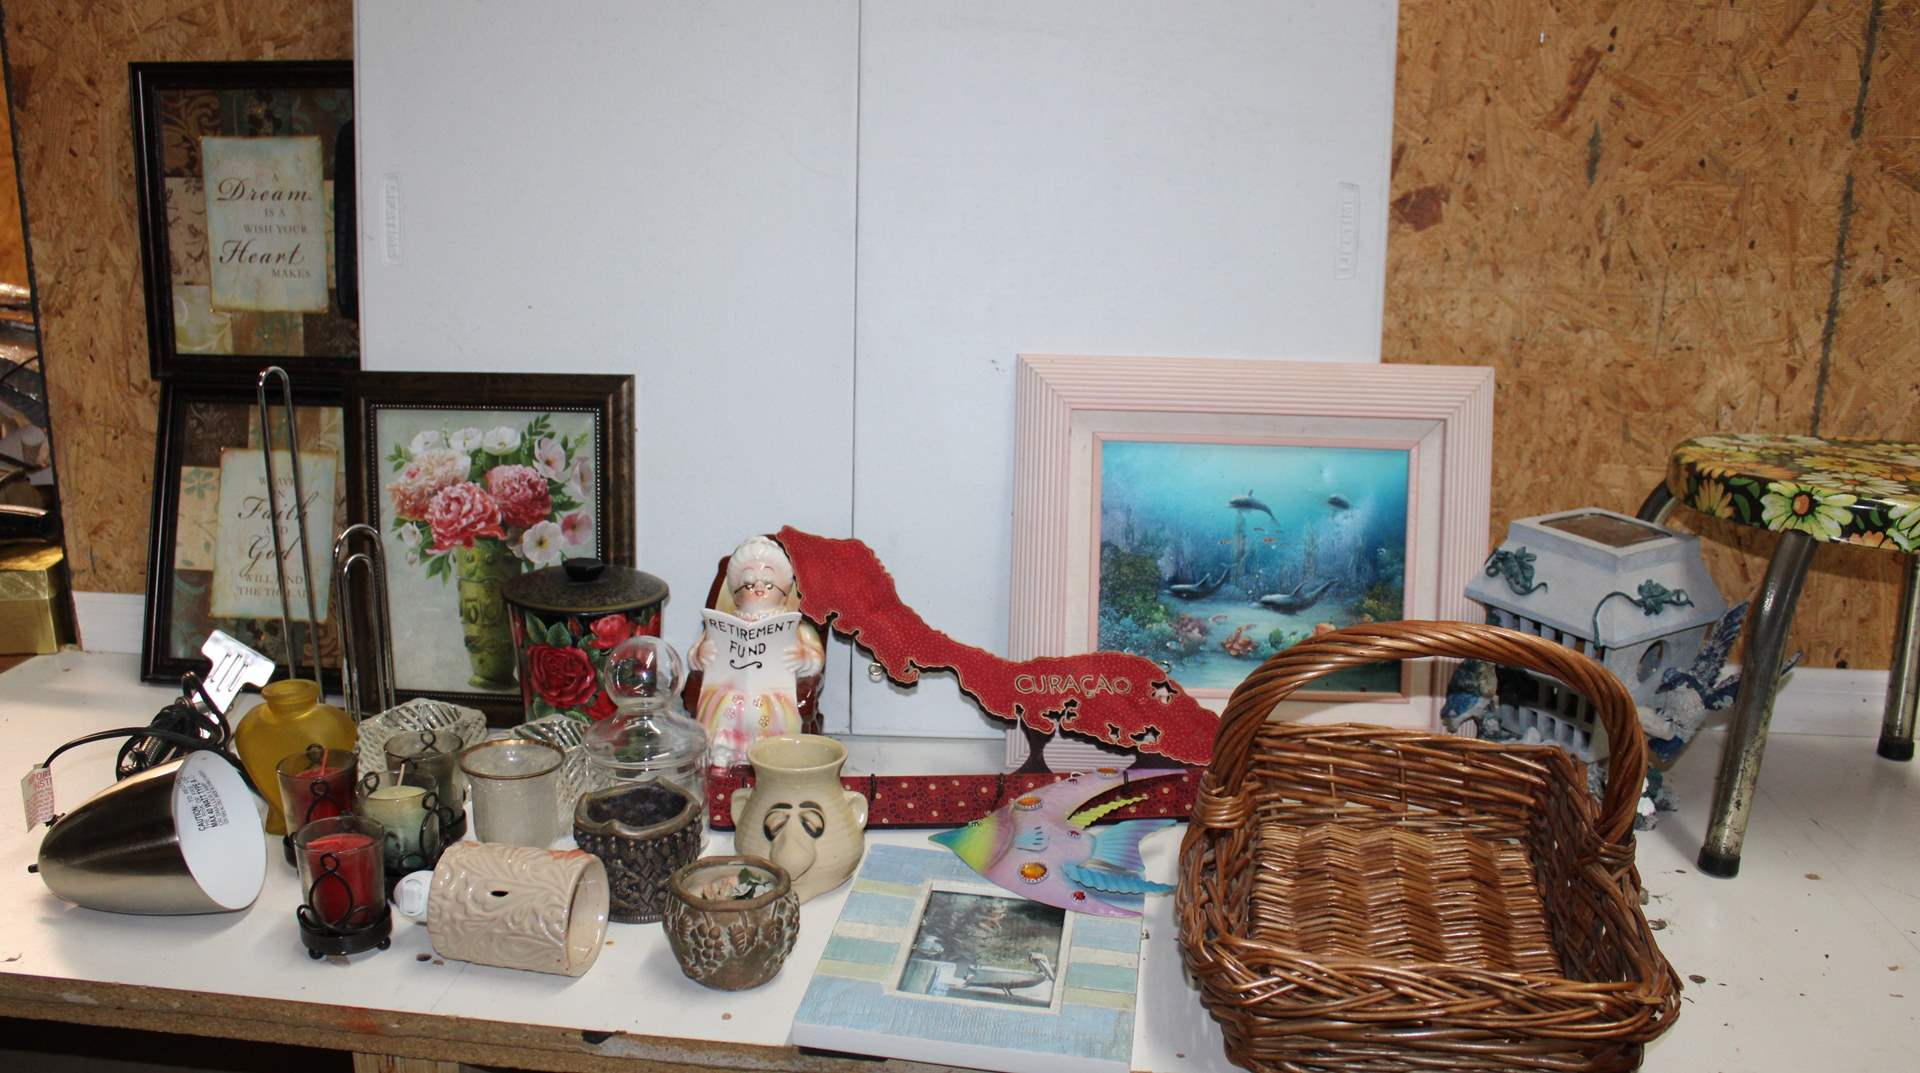 Lot#103 Wall art, dolphin painting, basket, candle holders, paper towel holder, desk lamp, metal stool, decor  (main image)